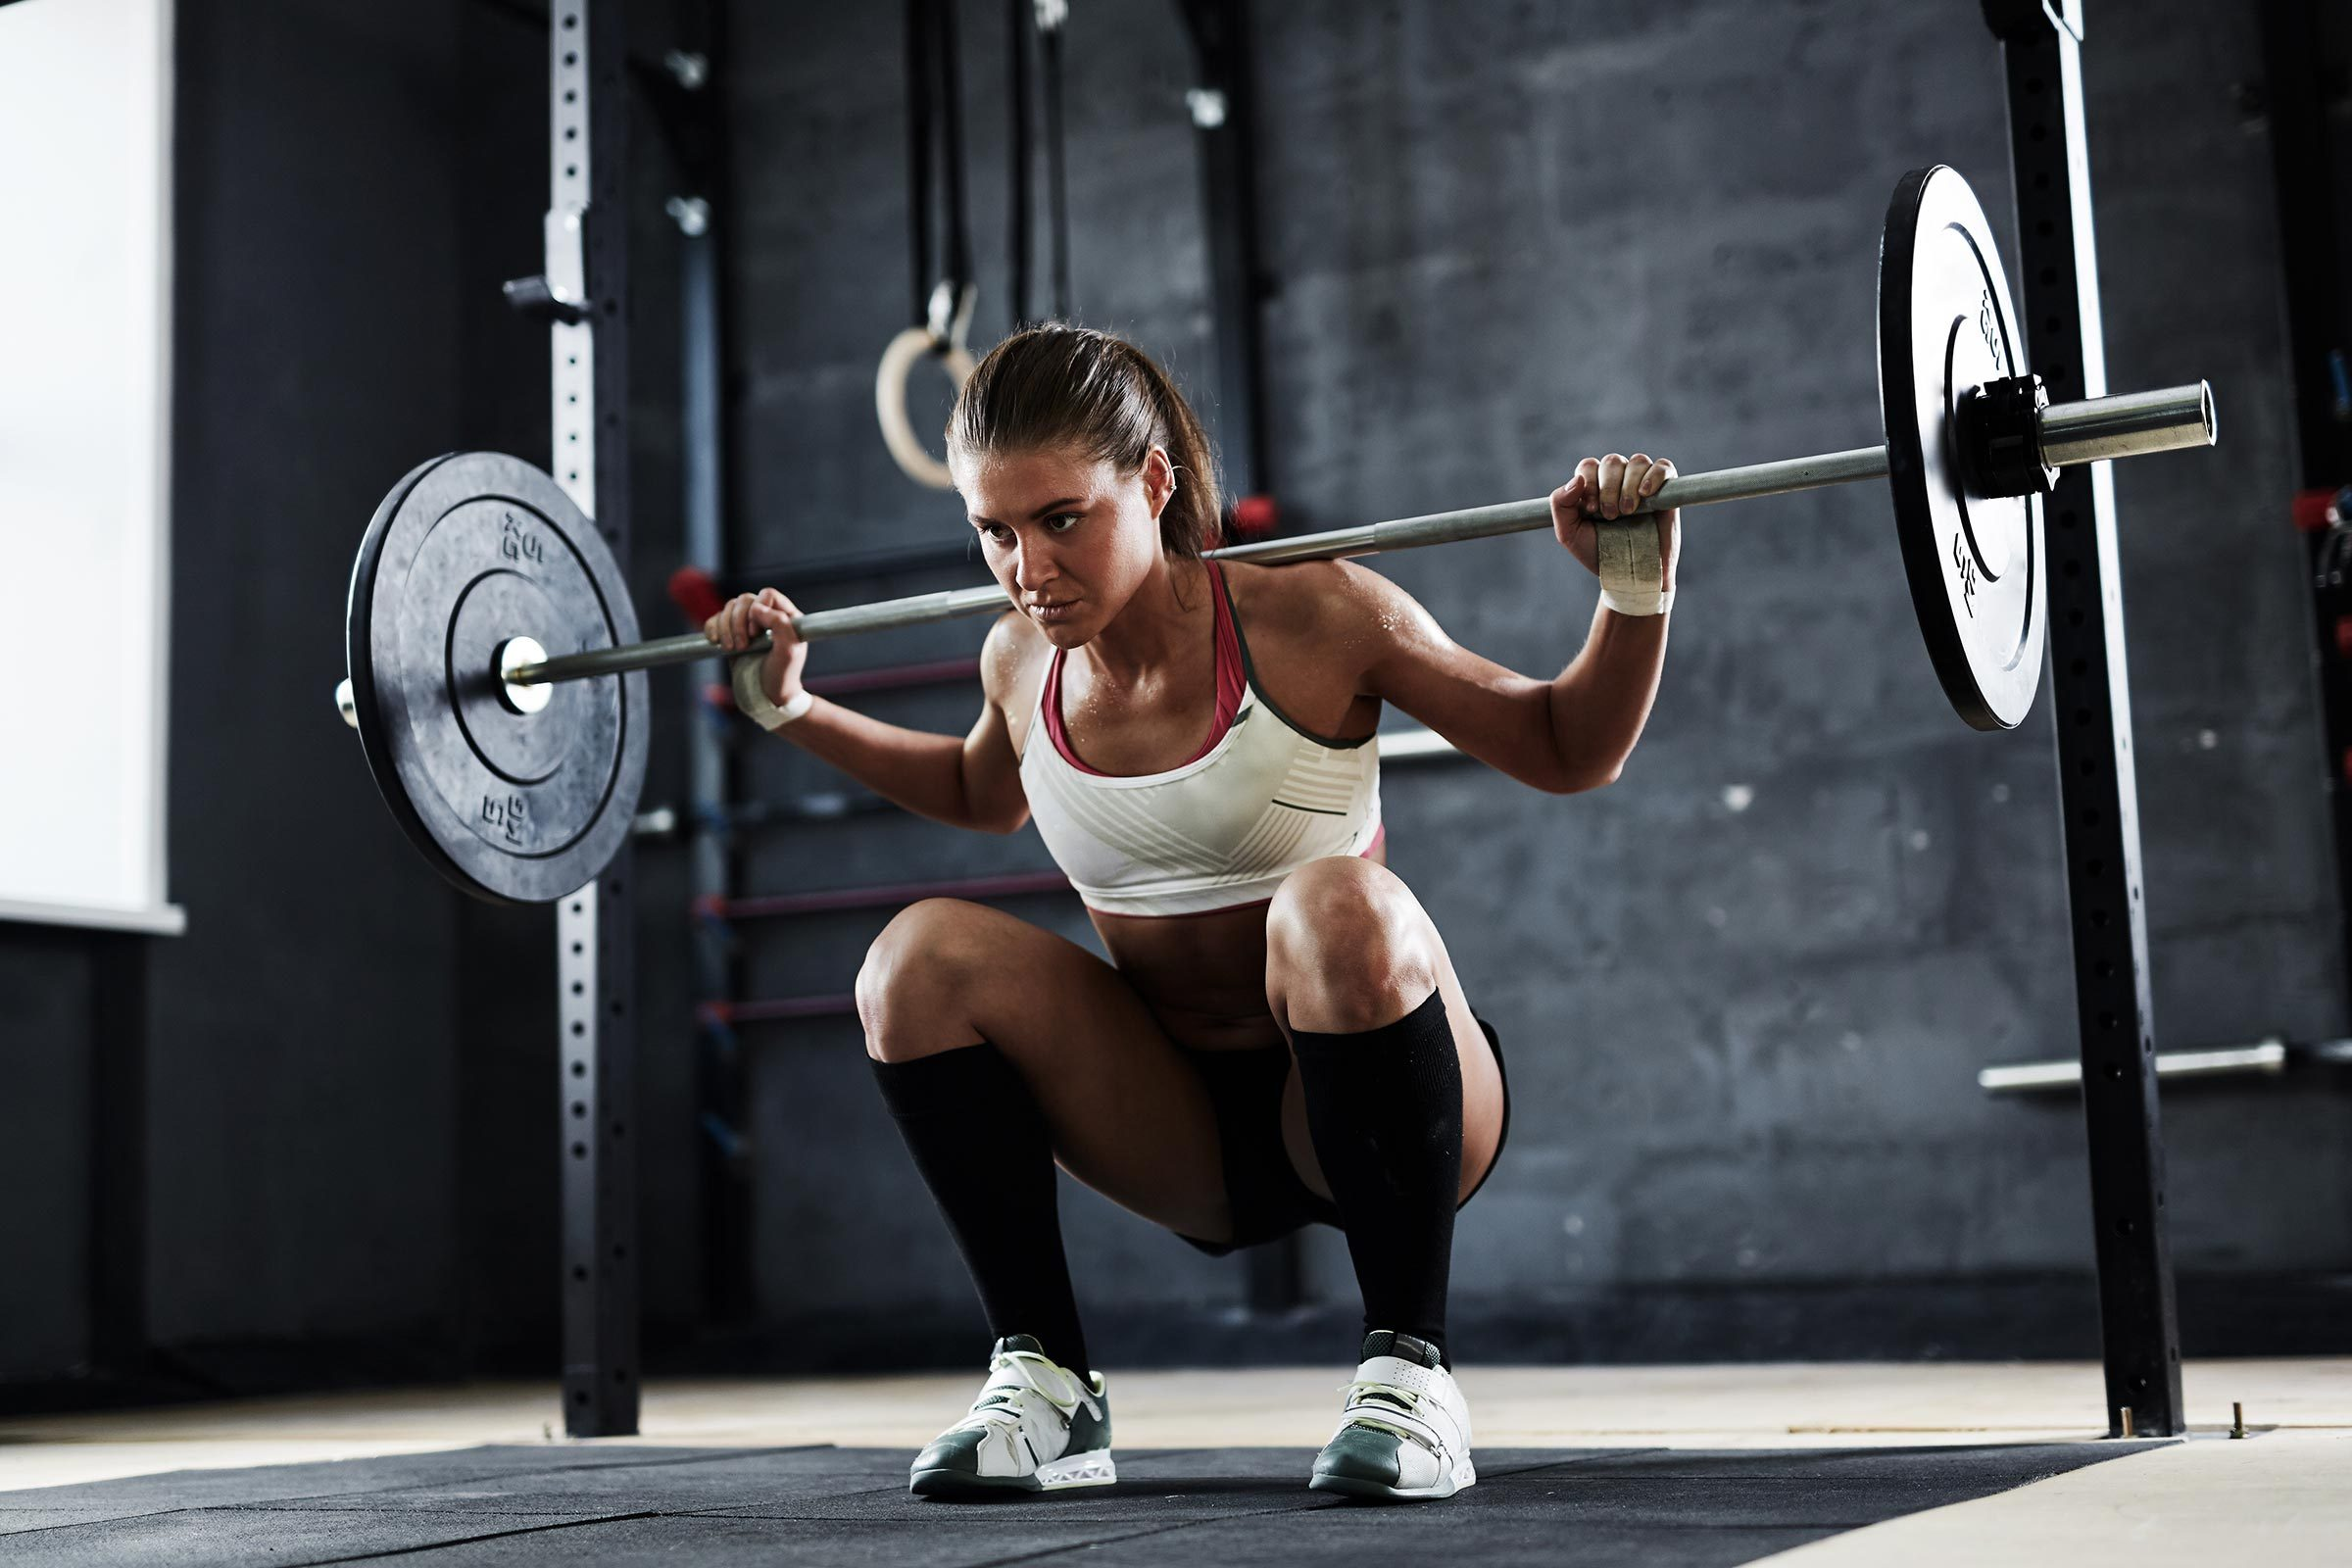 woman squat rack gym